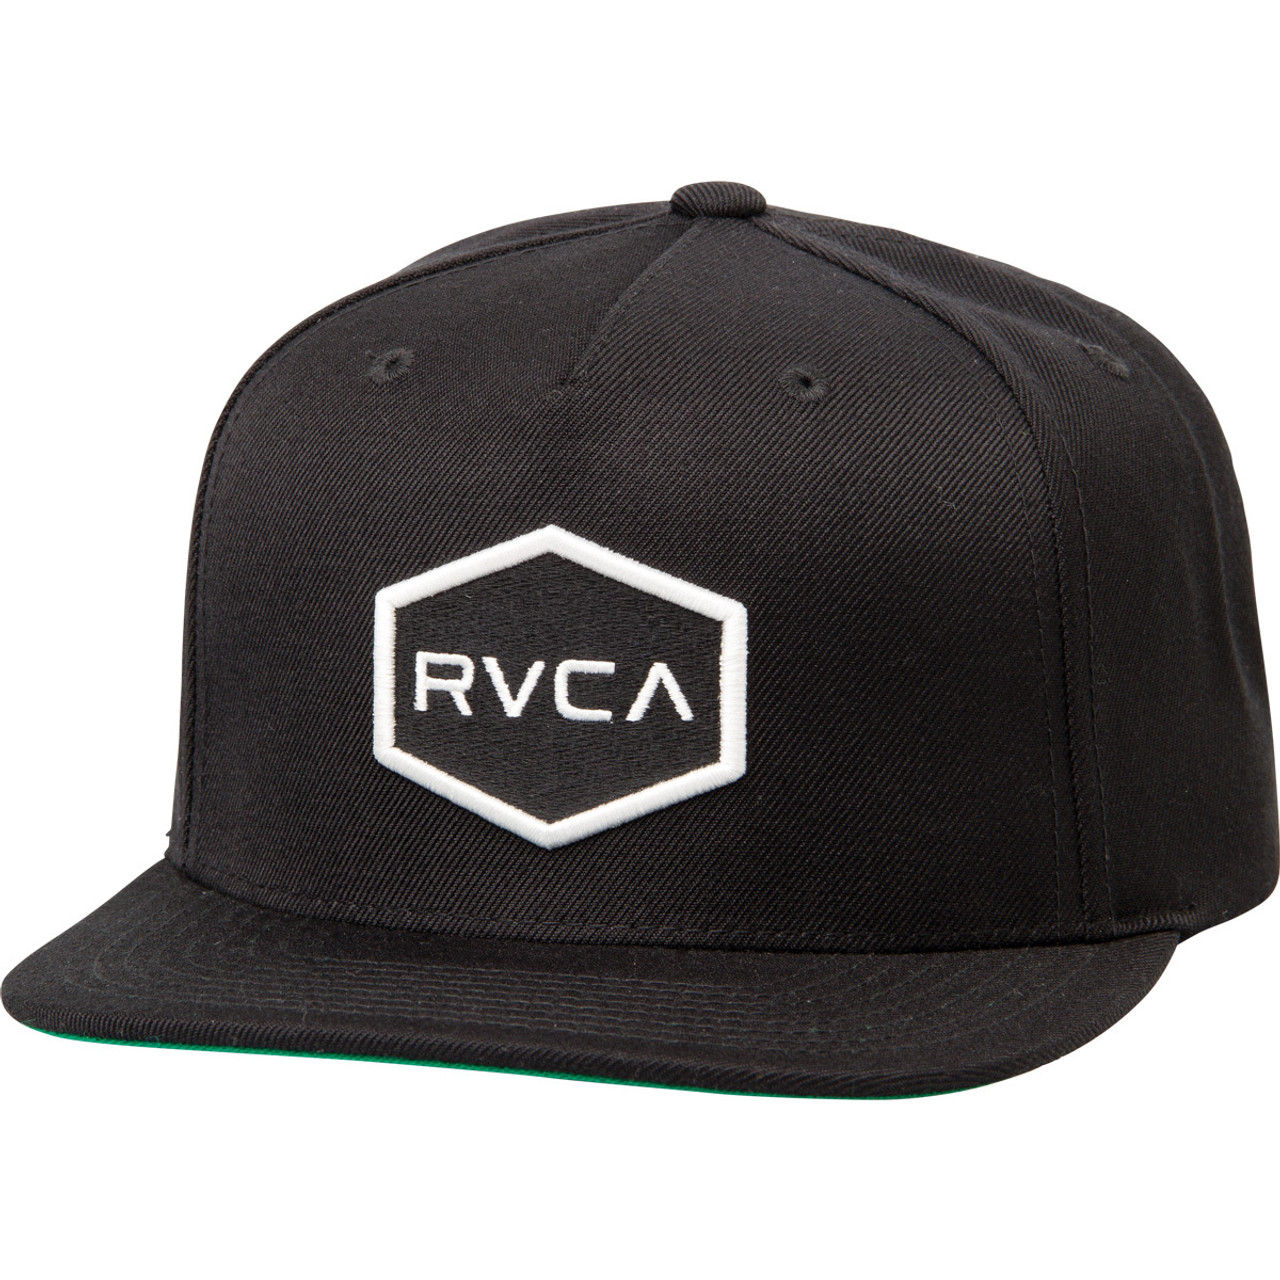 1f4aa4a0 RVCA Hat - Commonwealth Snapback - Black/White - Surf and Dirt